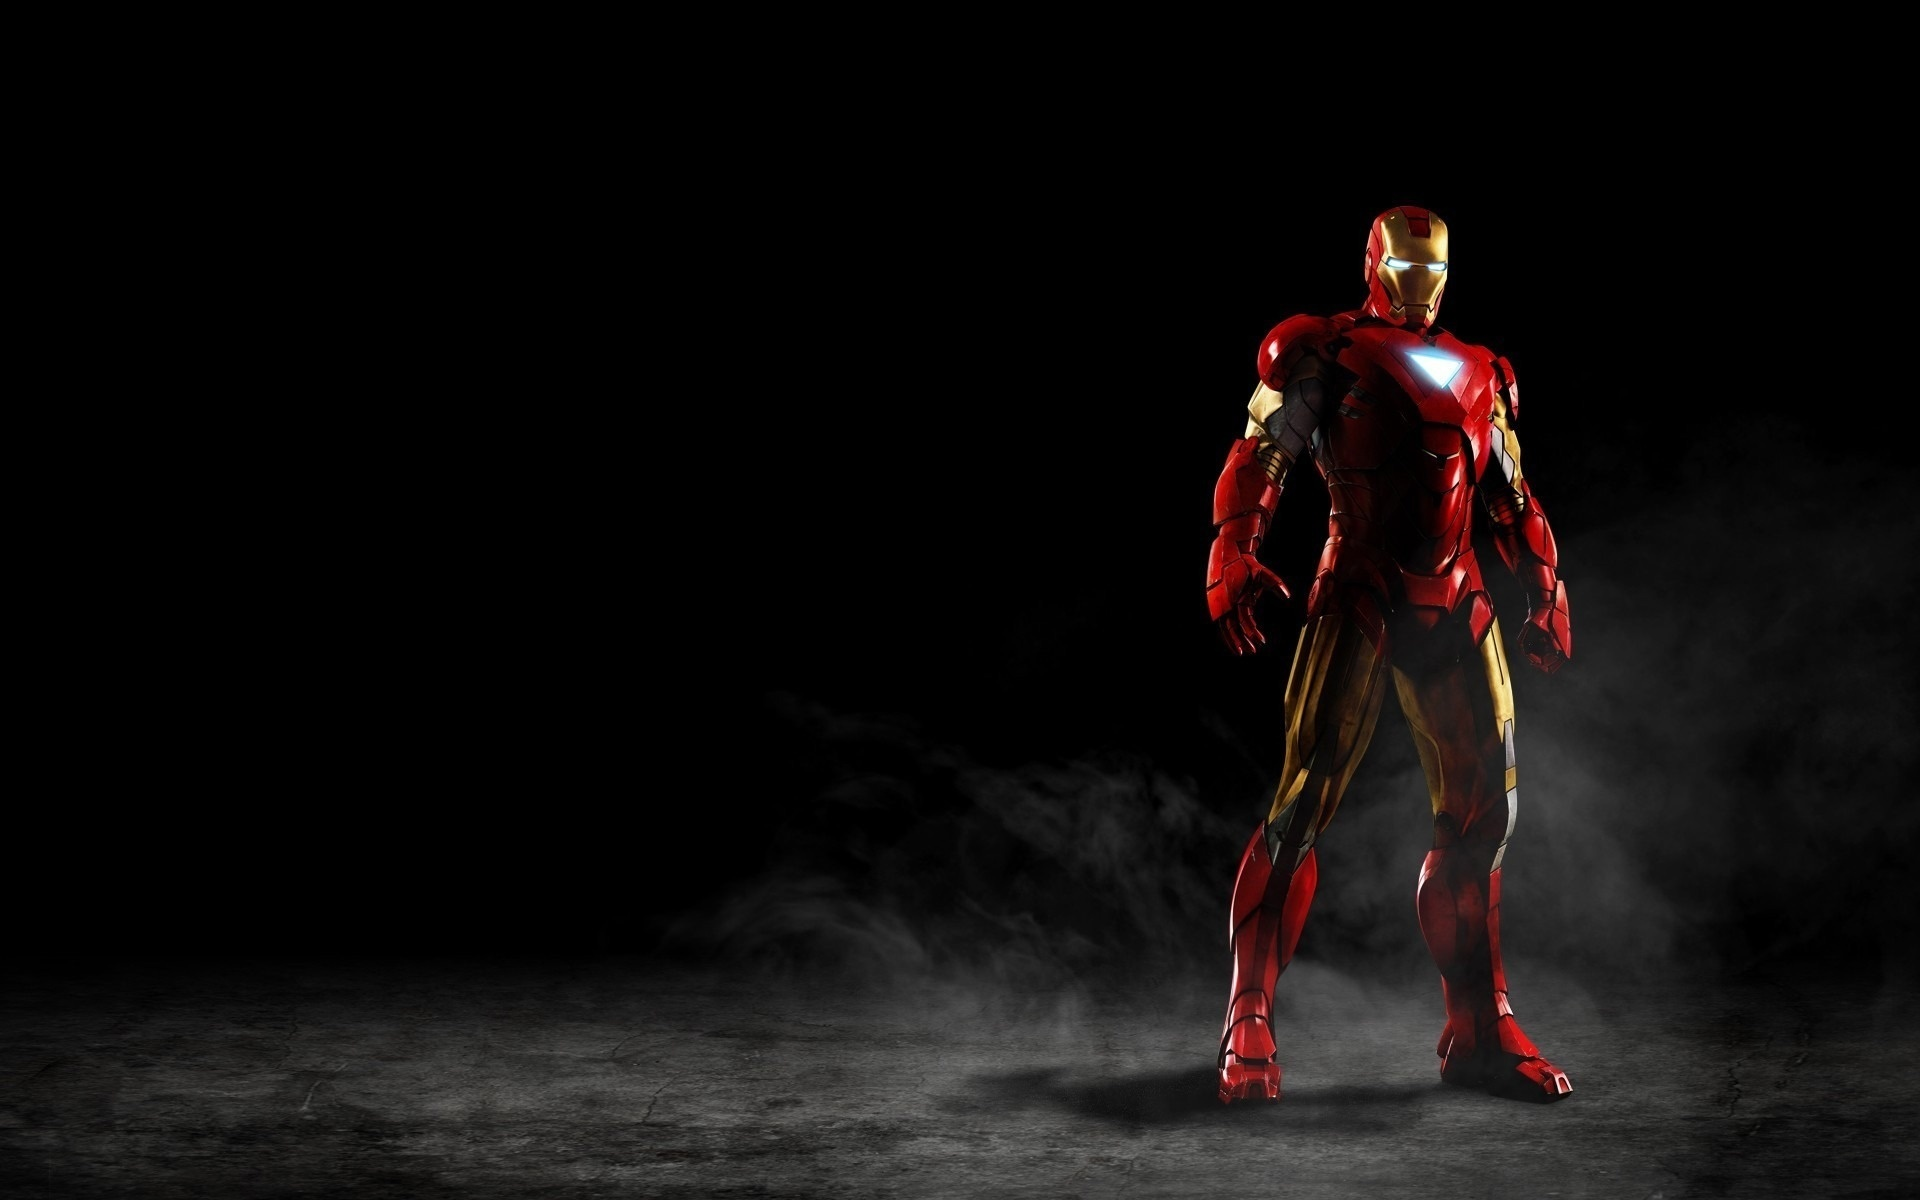 14693 download wallpaper Cinema, Iron Man screensavers and pictures for free